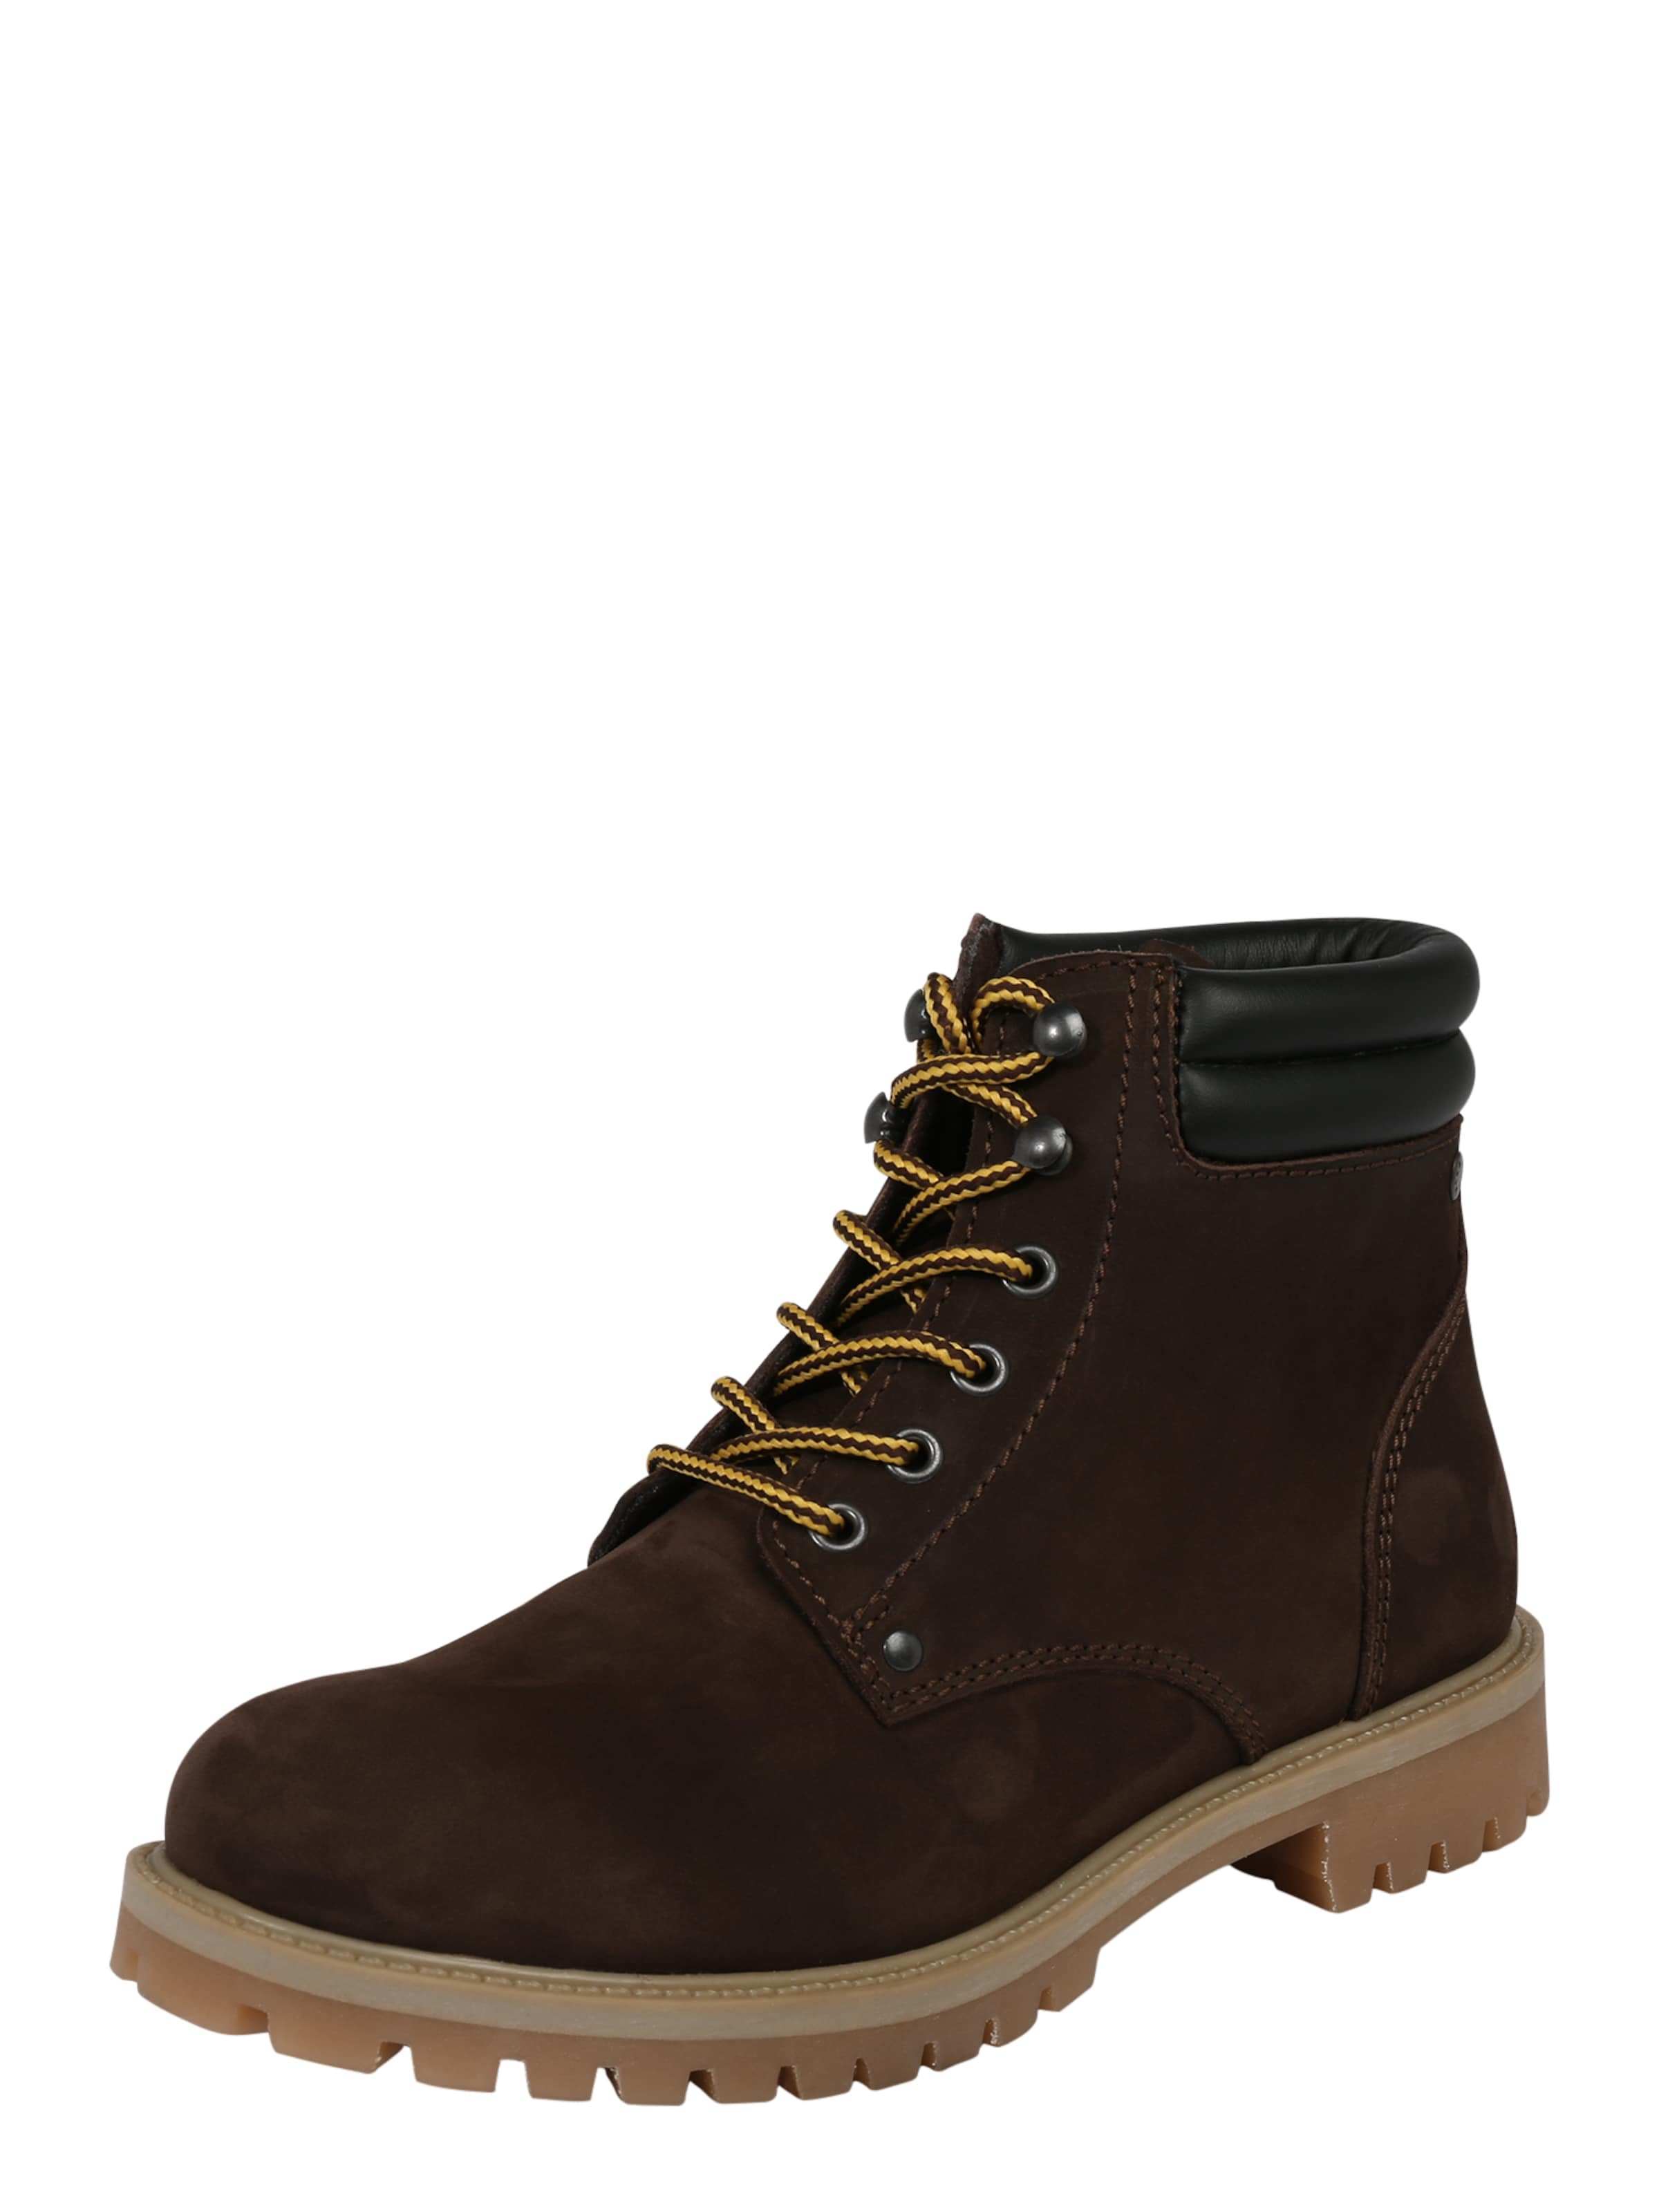 In Jones Stiefel 'jfwstoke' Jackamp; Schwarz 0Pnw8Ok